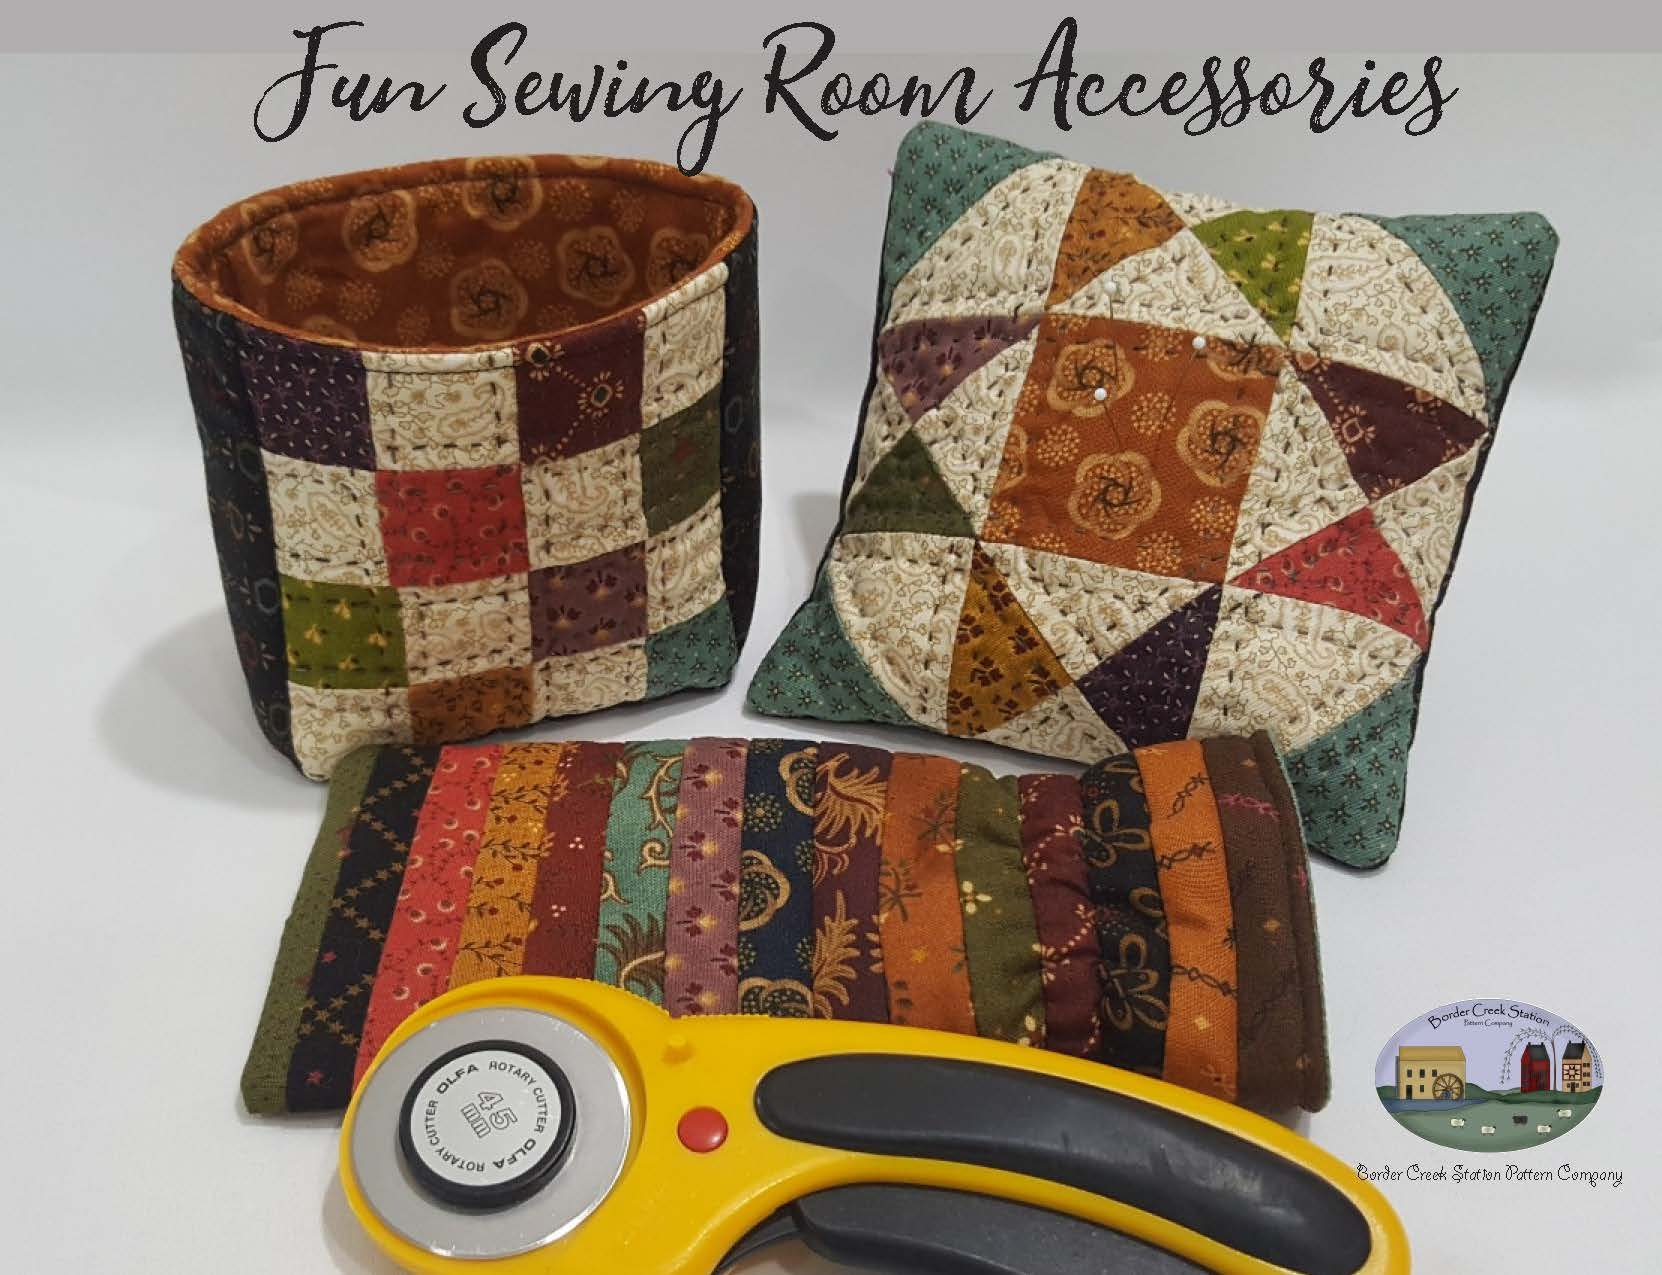 Fun Sewing Room Accessories!